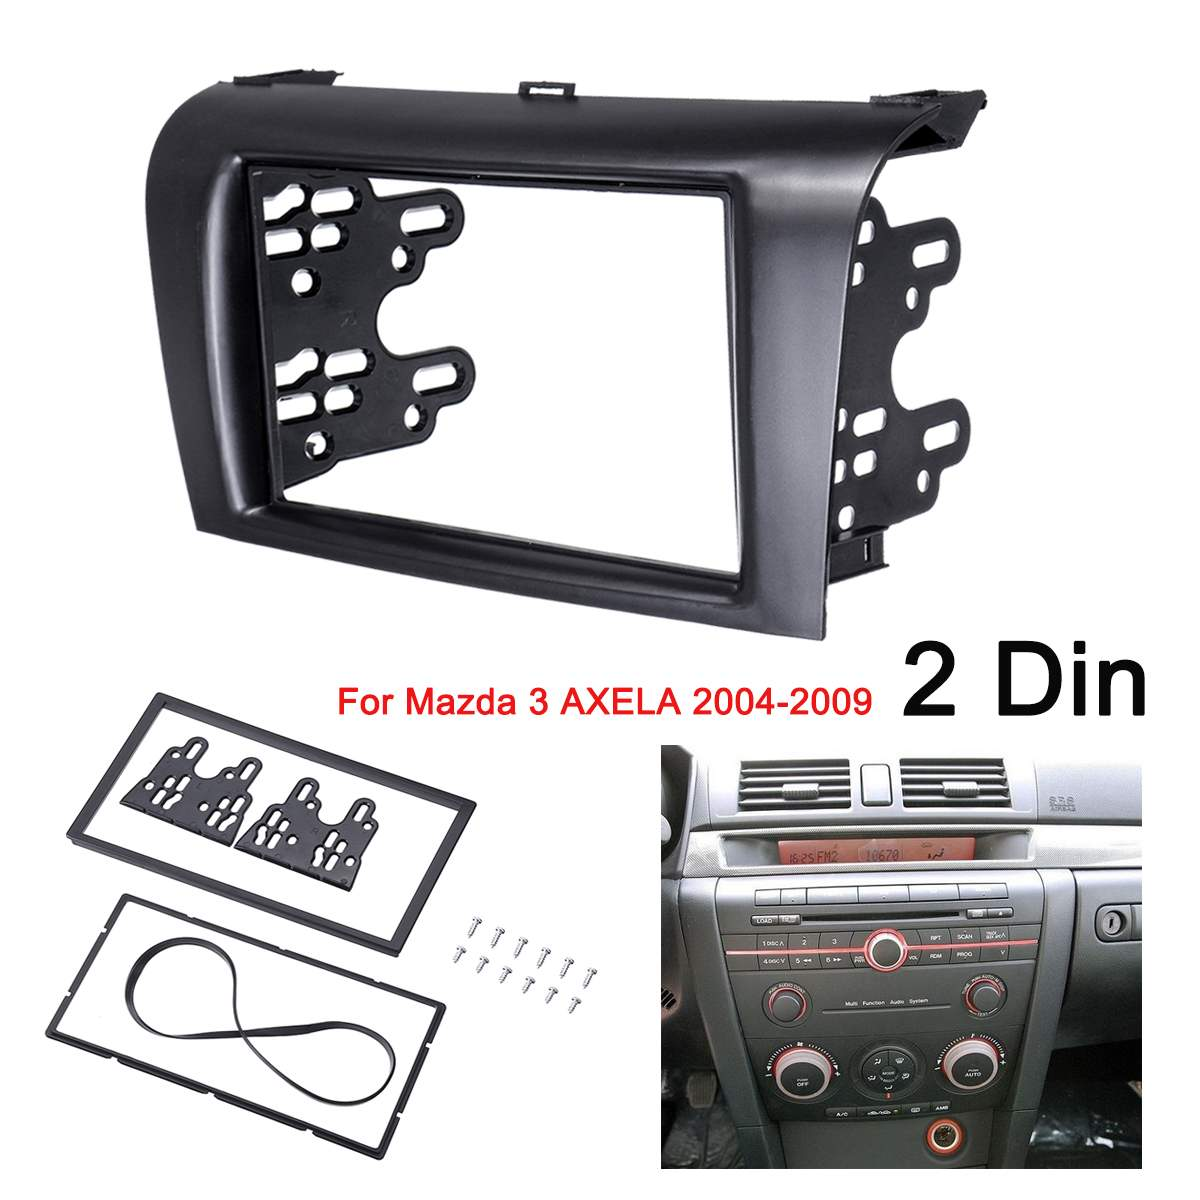 2DIN Car Stereo <font><b>Radio</b></font> DVD Fascia Fascias Dash Panel Plate Trim Kit Frame Cover For <font><b>Mazda</b></font> <font><b>3</b></font> AXELA 2004 2005 <font><b>2006</b></font> 2007 2008 2009 image